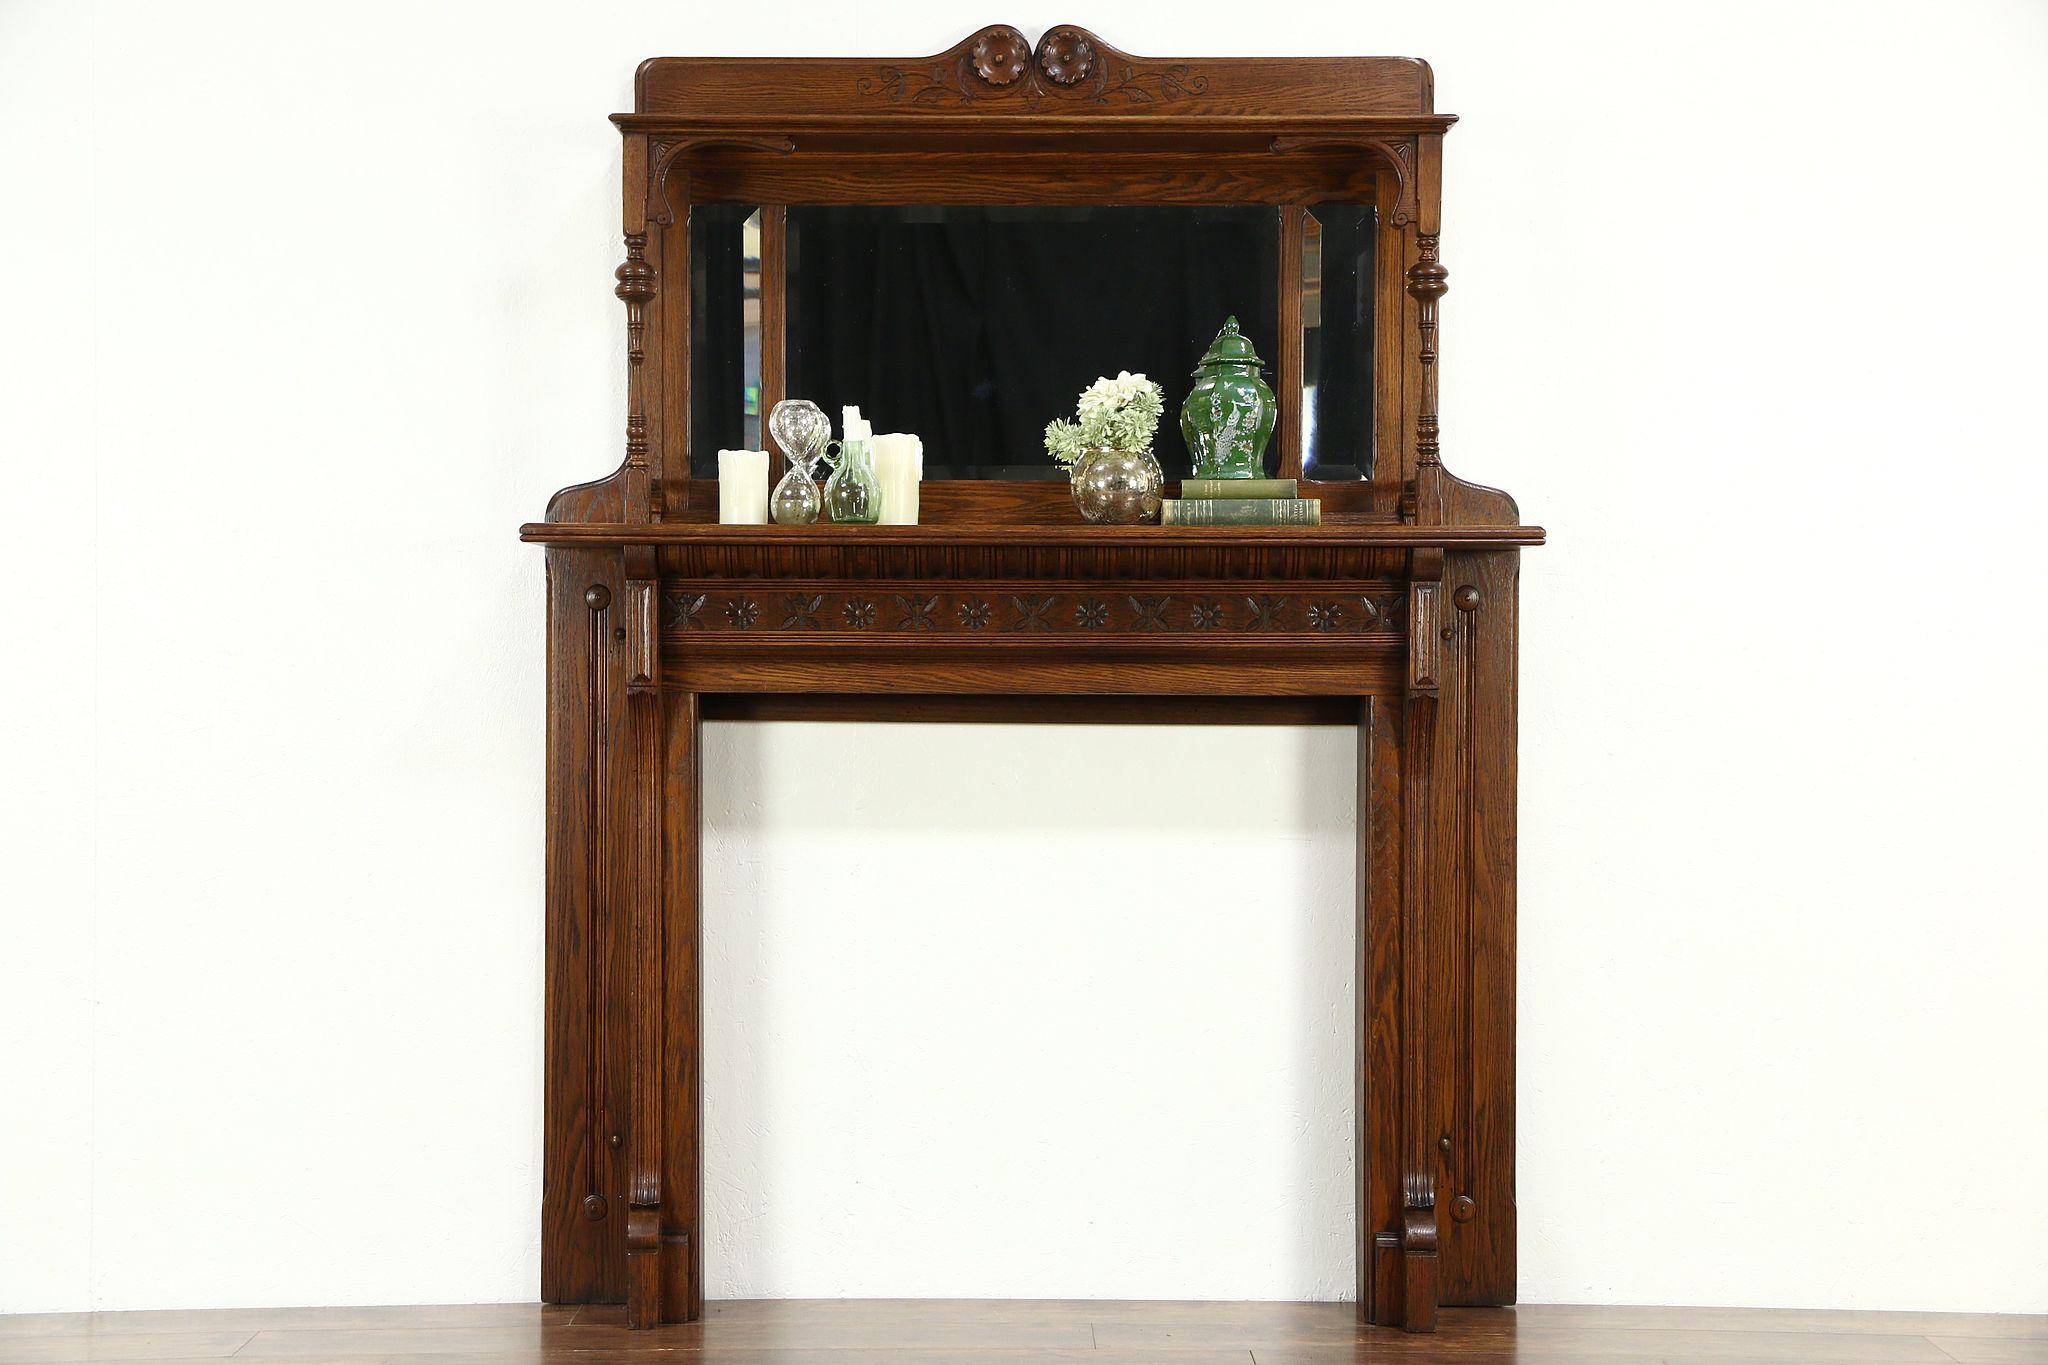 Sold victorian eastlake oak antique architectural for Architecture antique